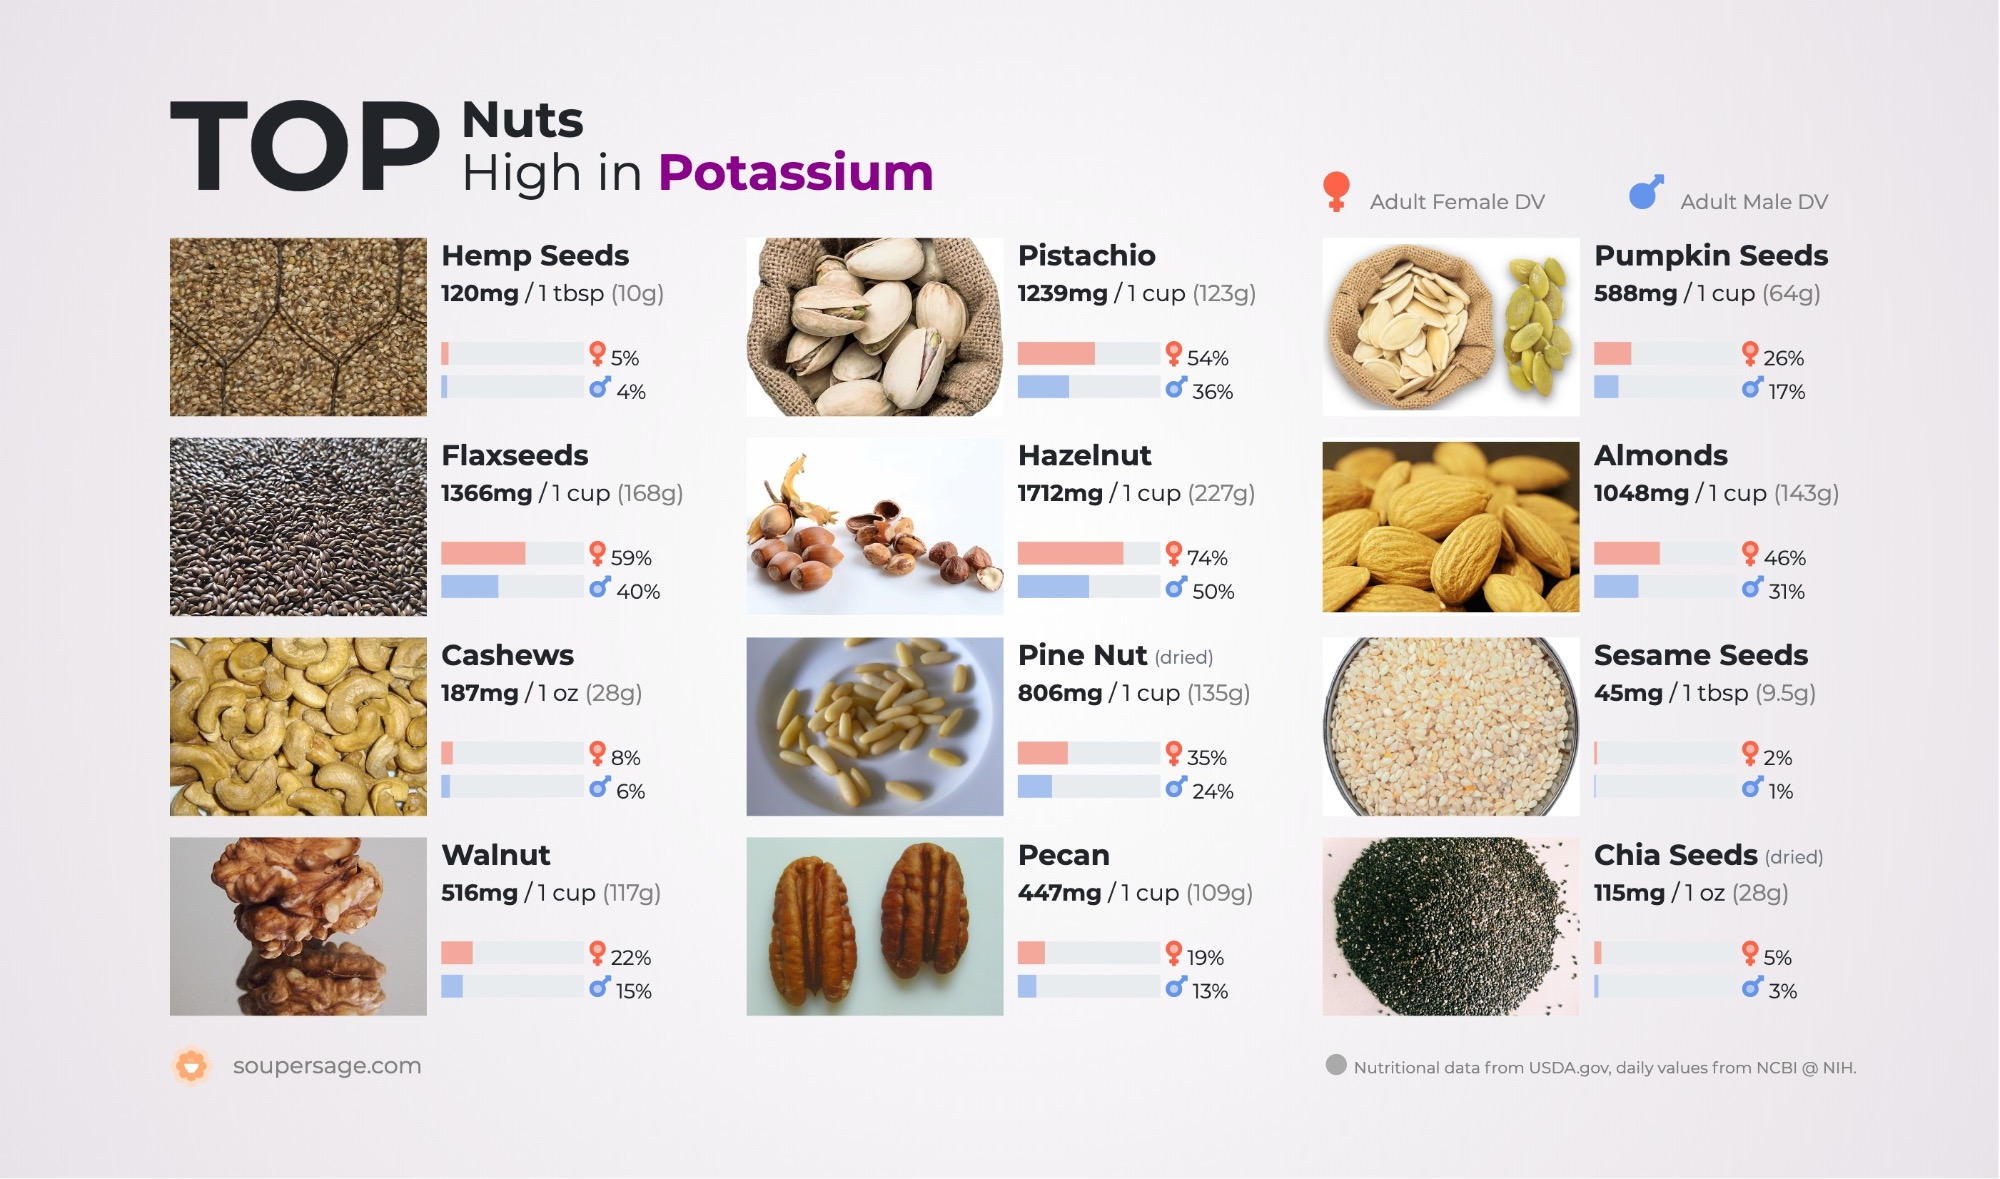 image of Top Nuts High in Potassium